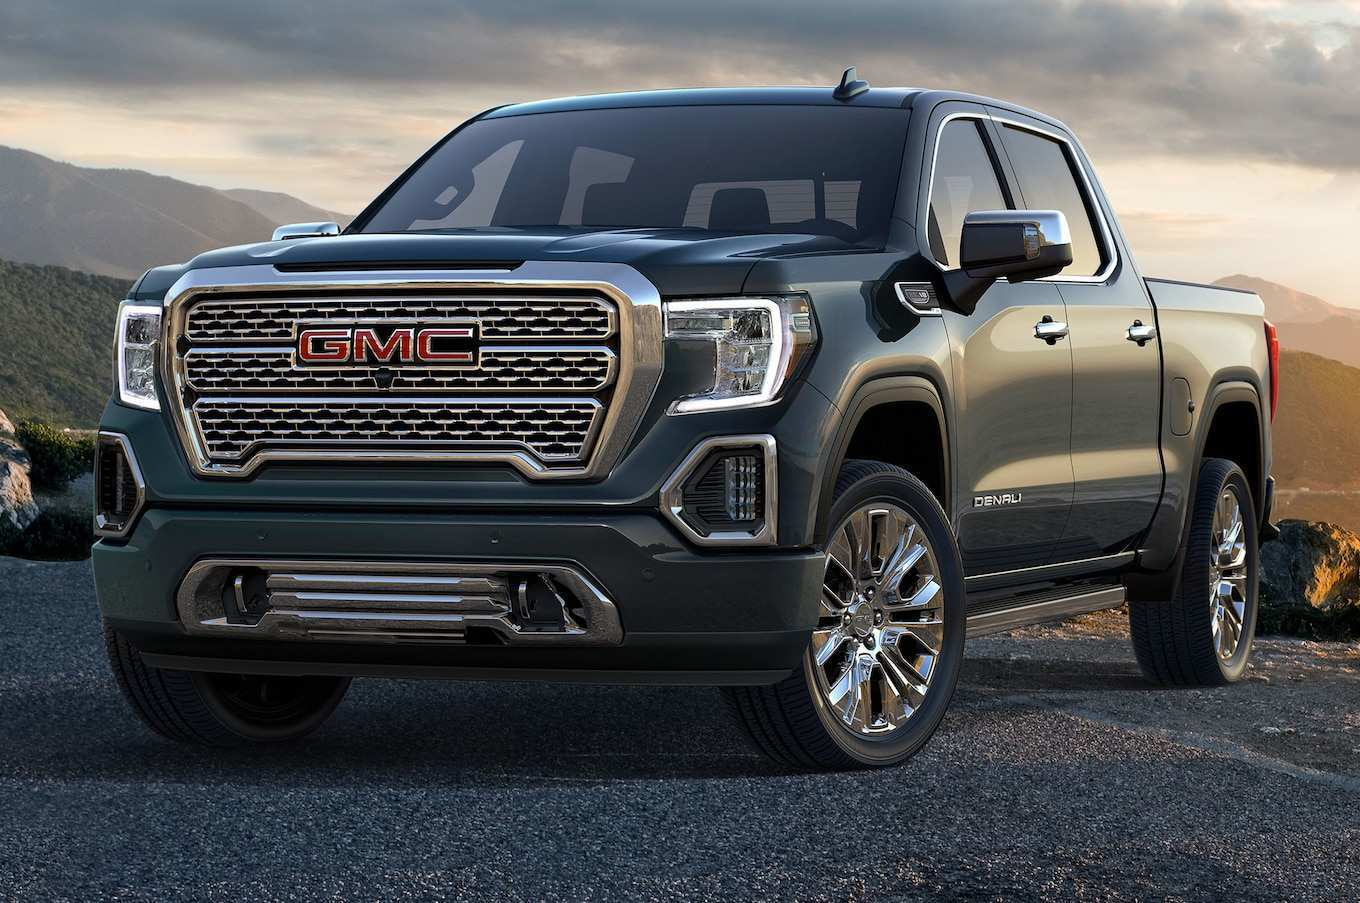 50 New 2019 Gmc Sierra Images Style by 2019 Gmc Sierra Images